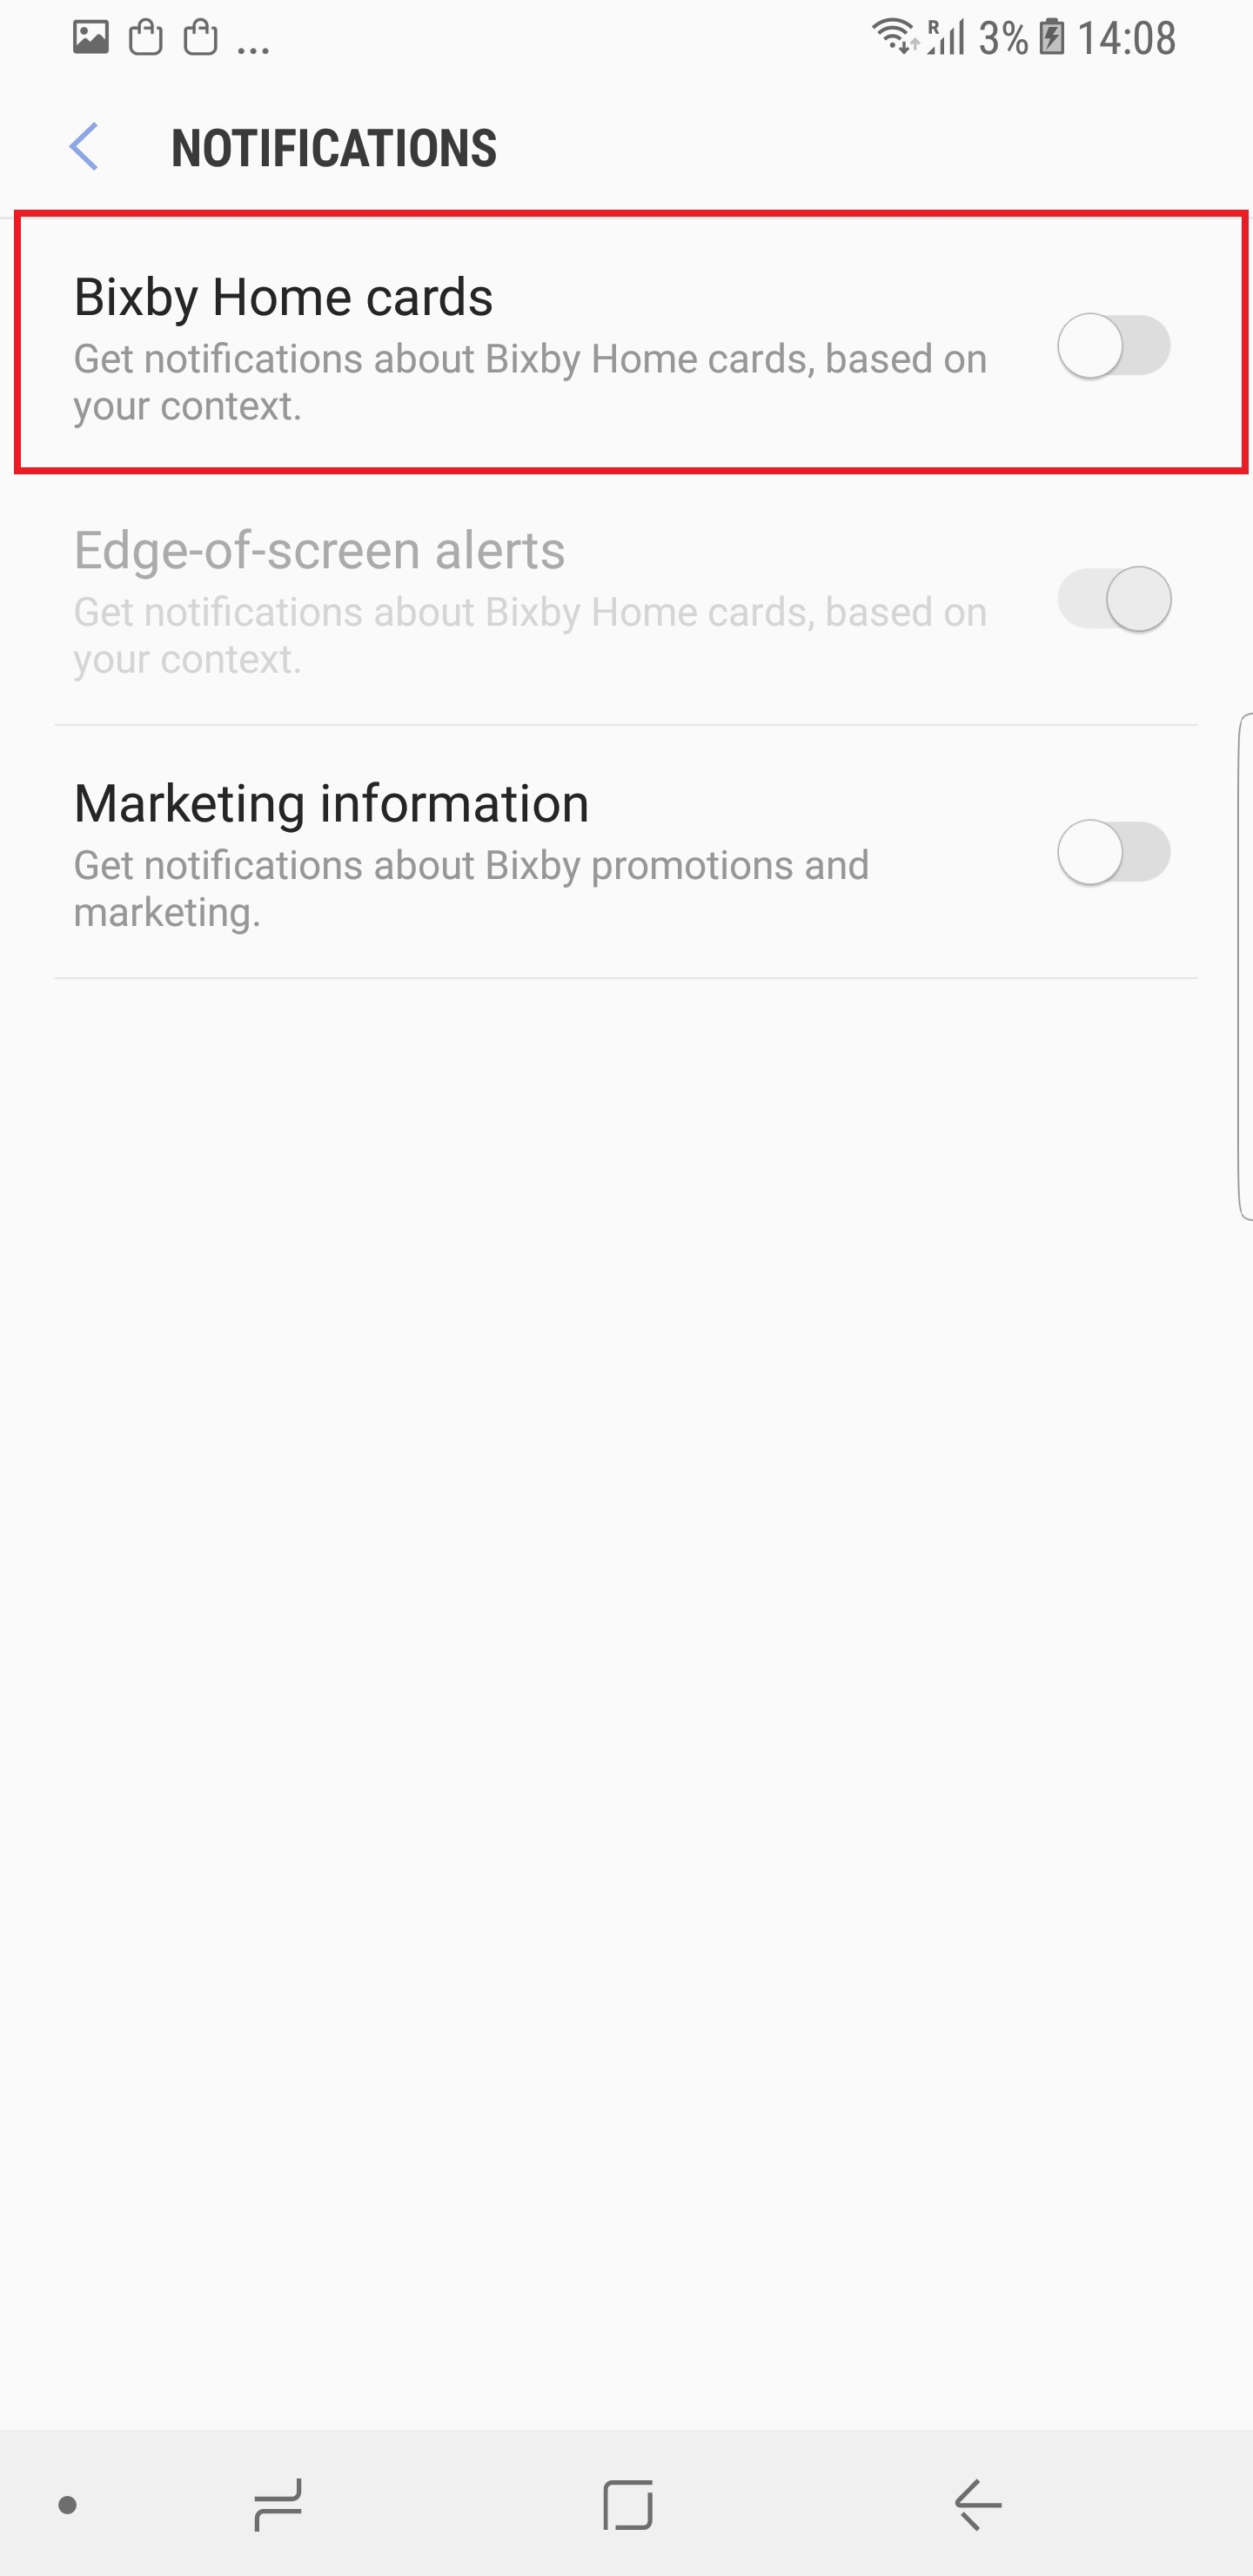 Galaxy S8 Tip: Disable Bixby notifications and reminders - SamMobile